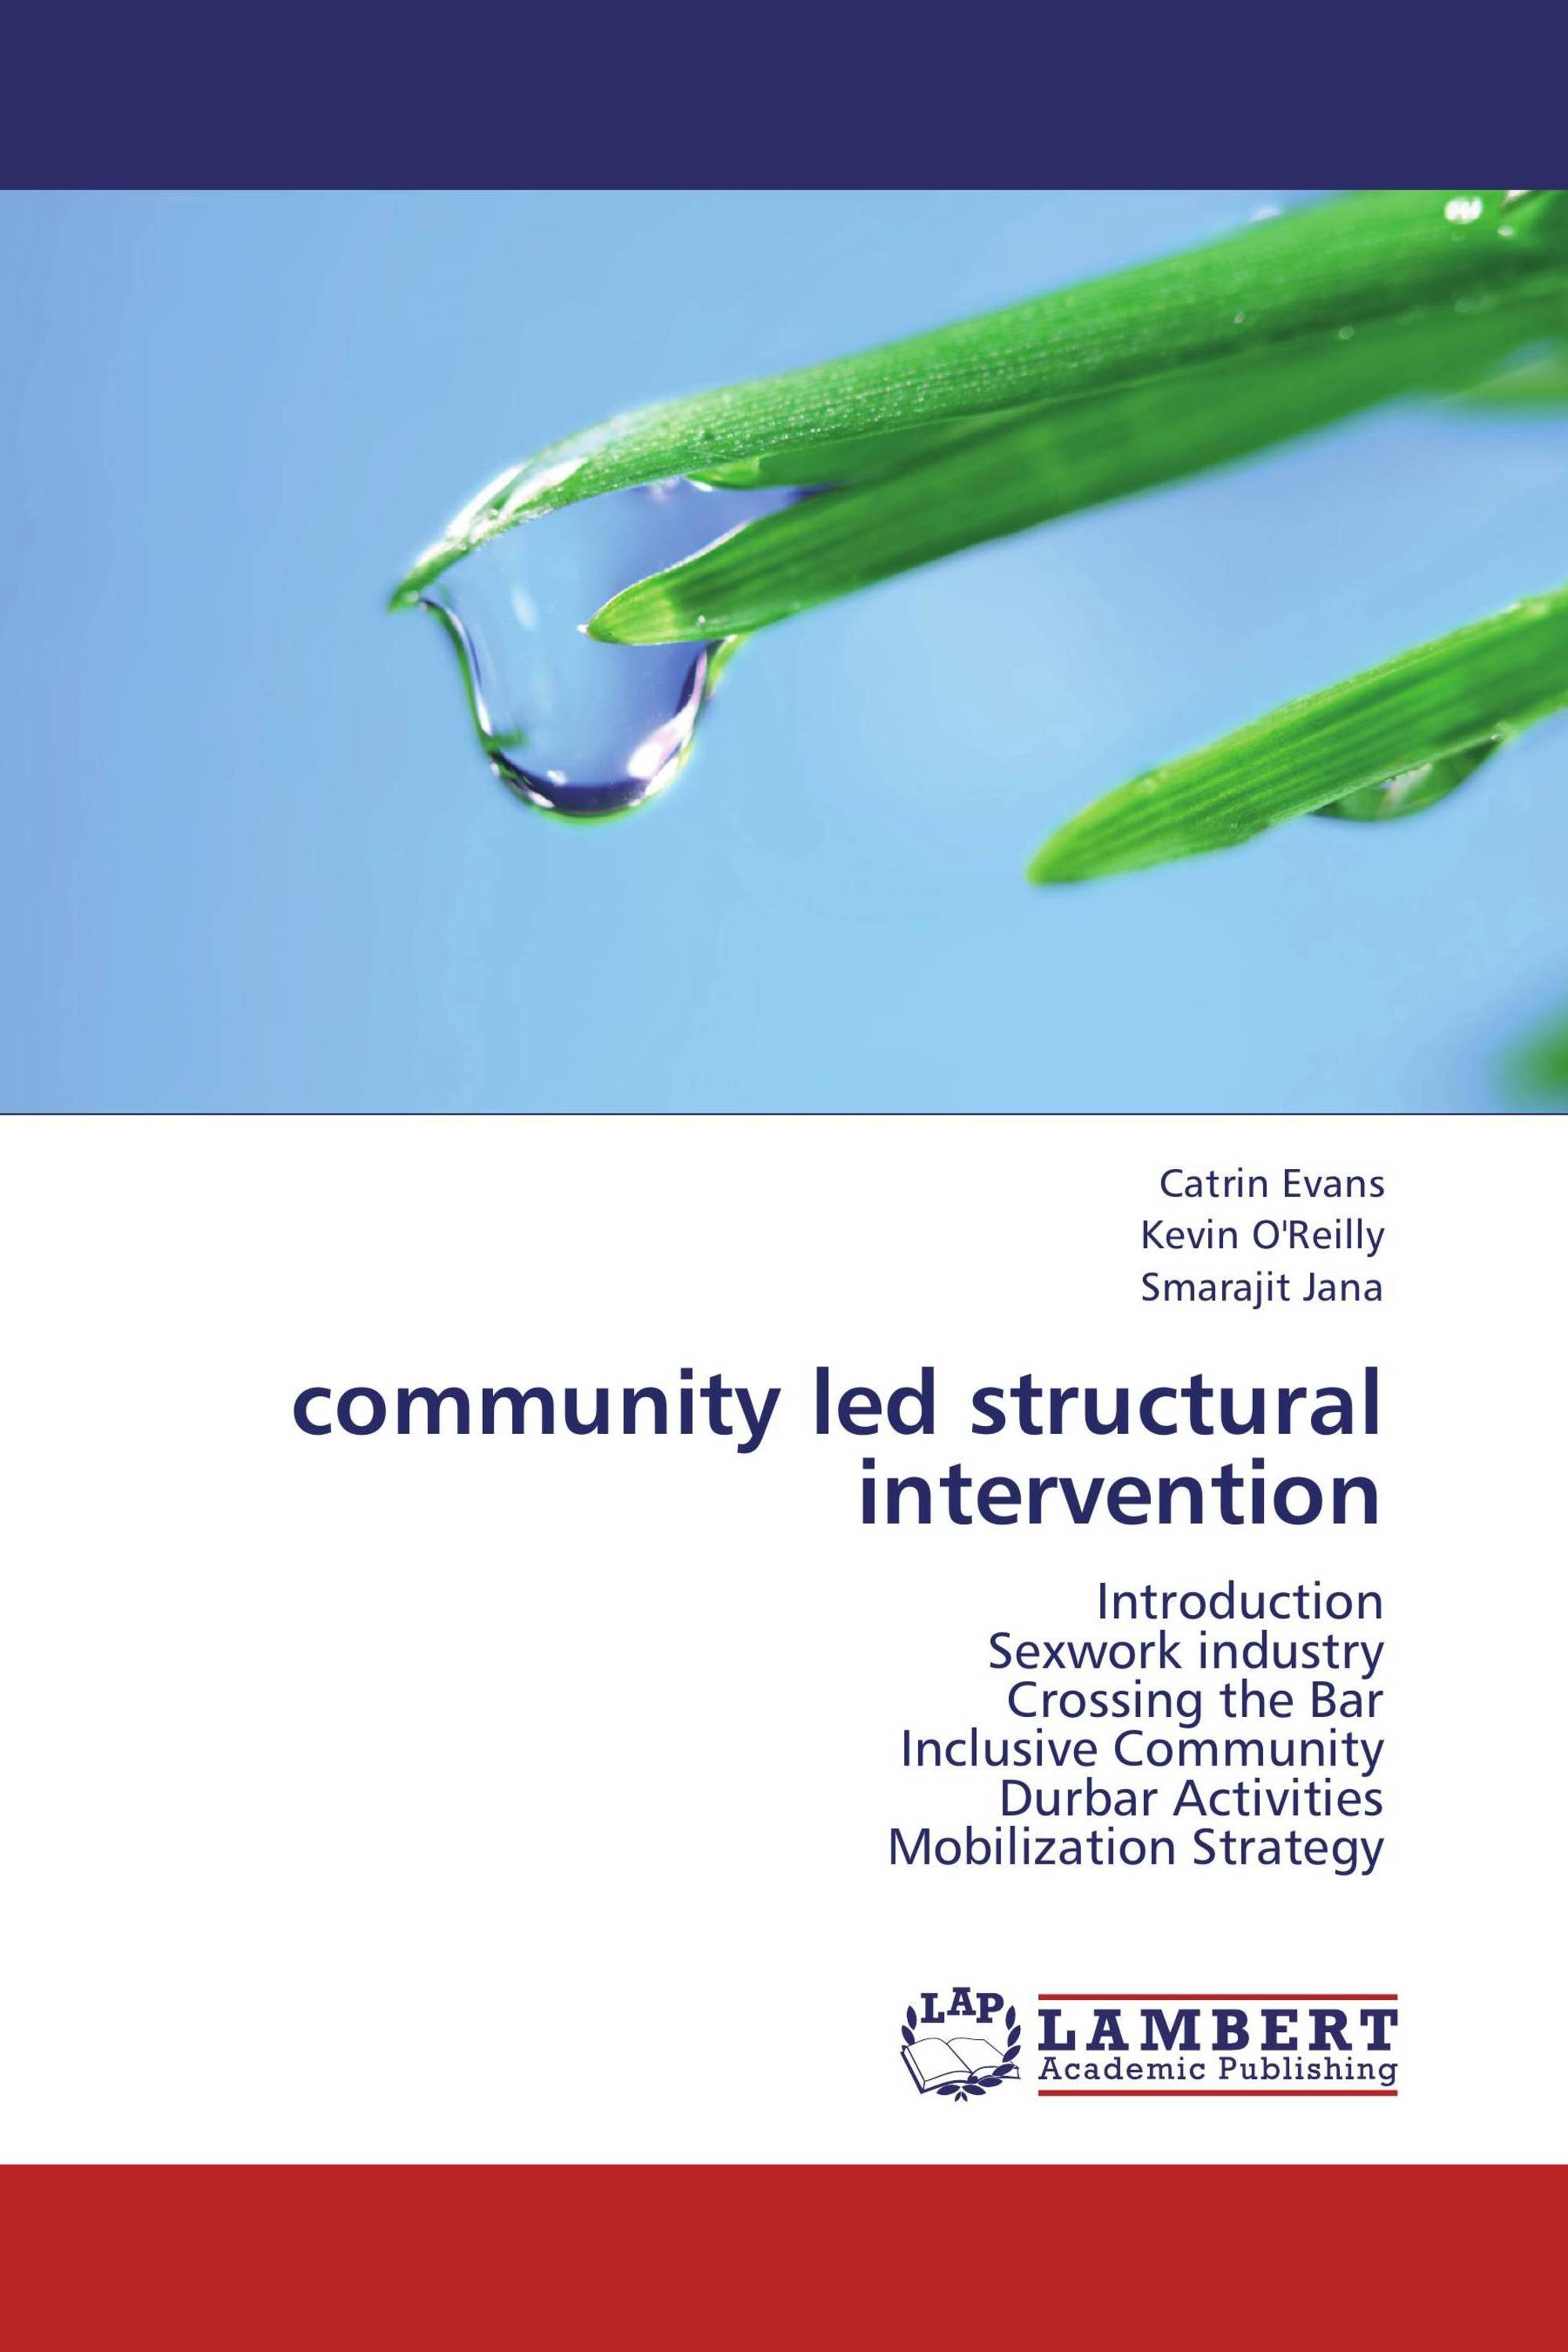 community led structural intervention